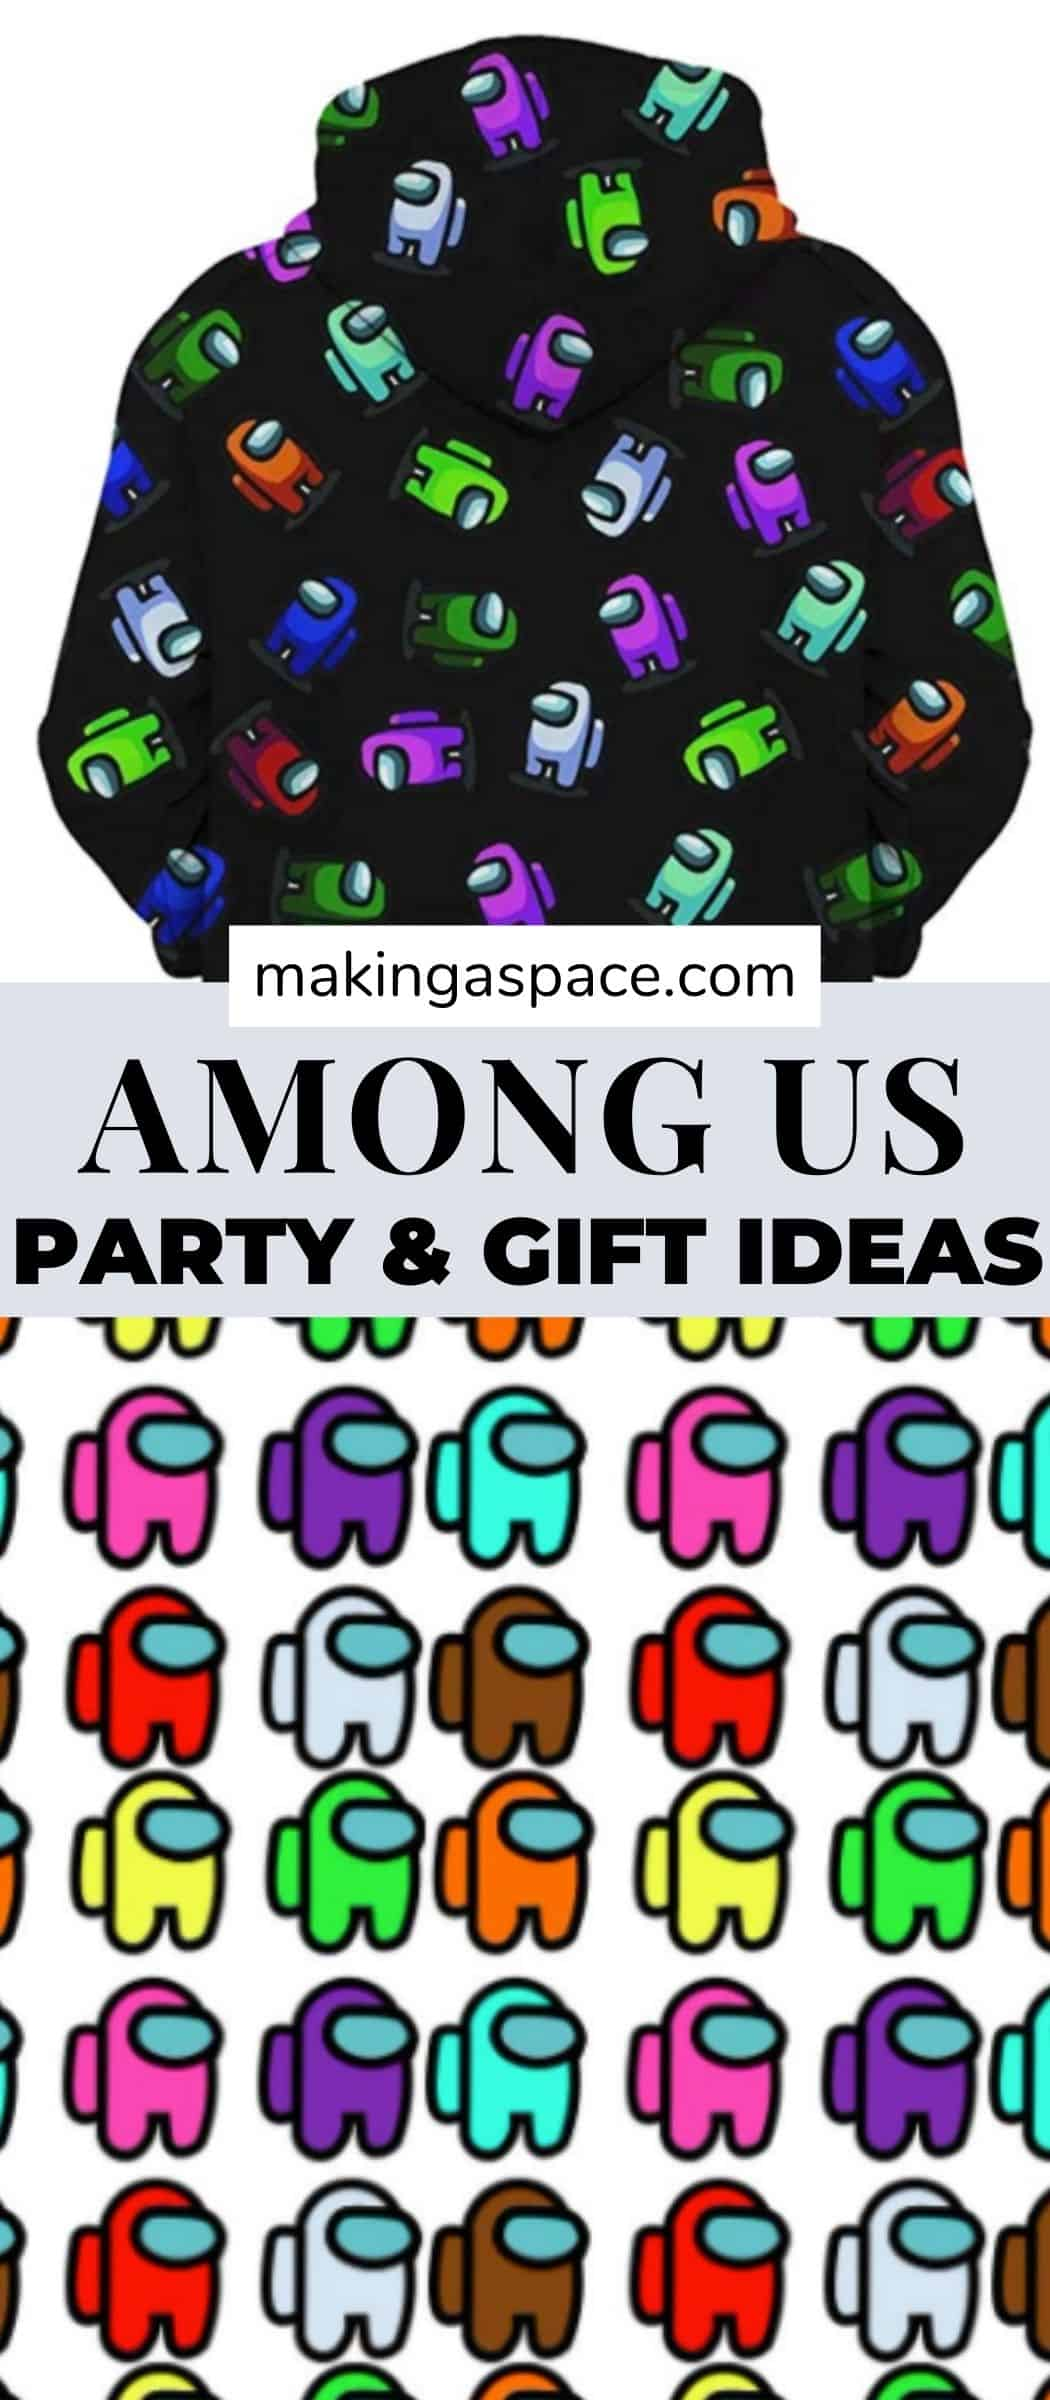 AMONG US PARTY IDEAS